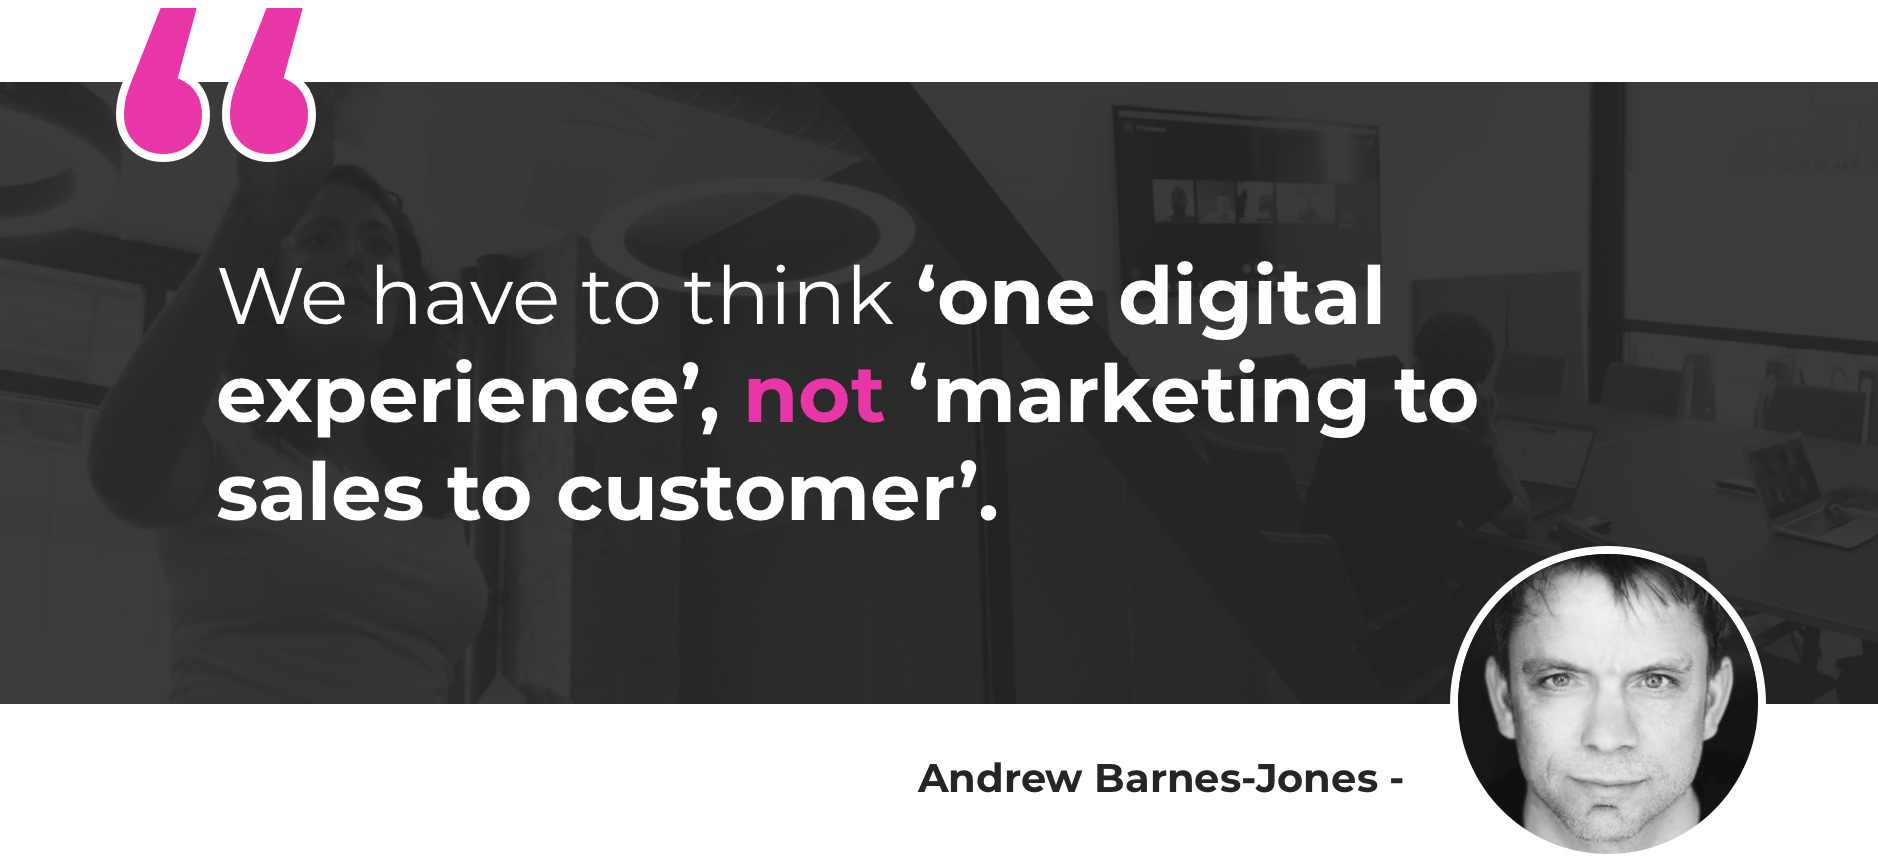 We have to think 'one digital experience', not 'marketing to sales to customer'.